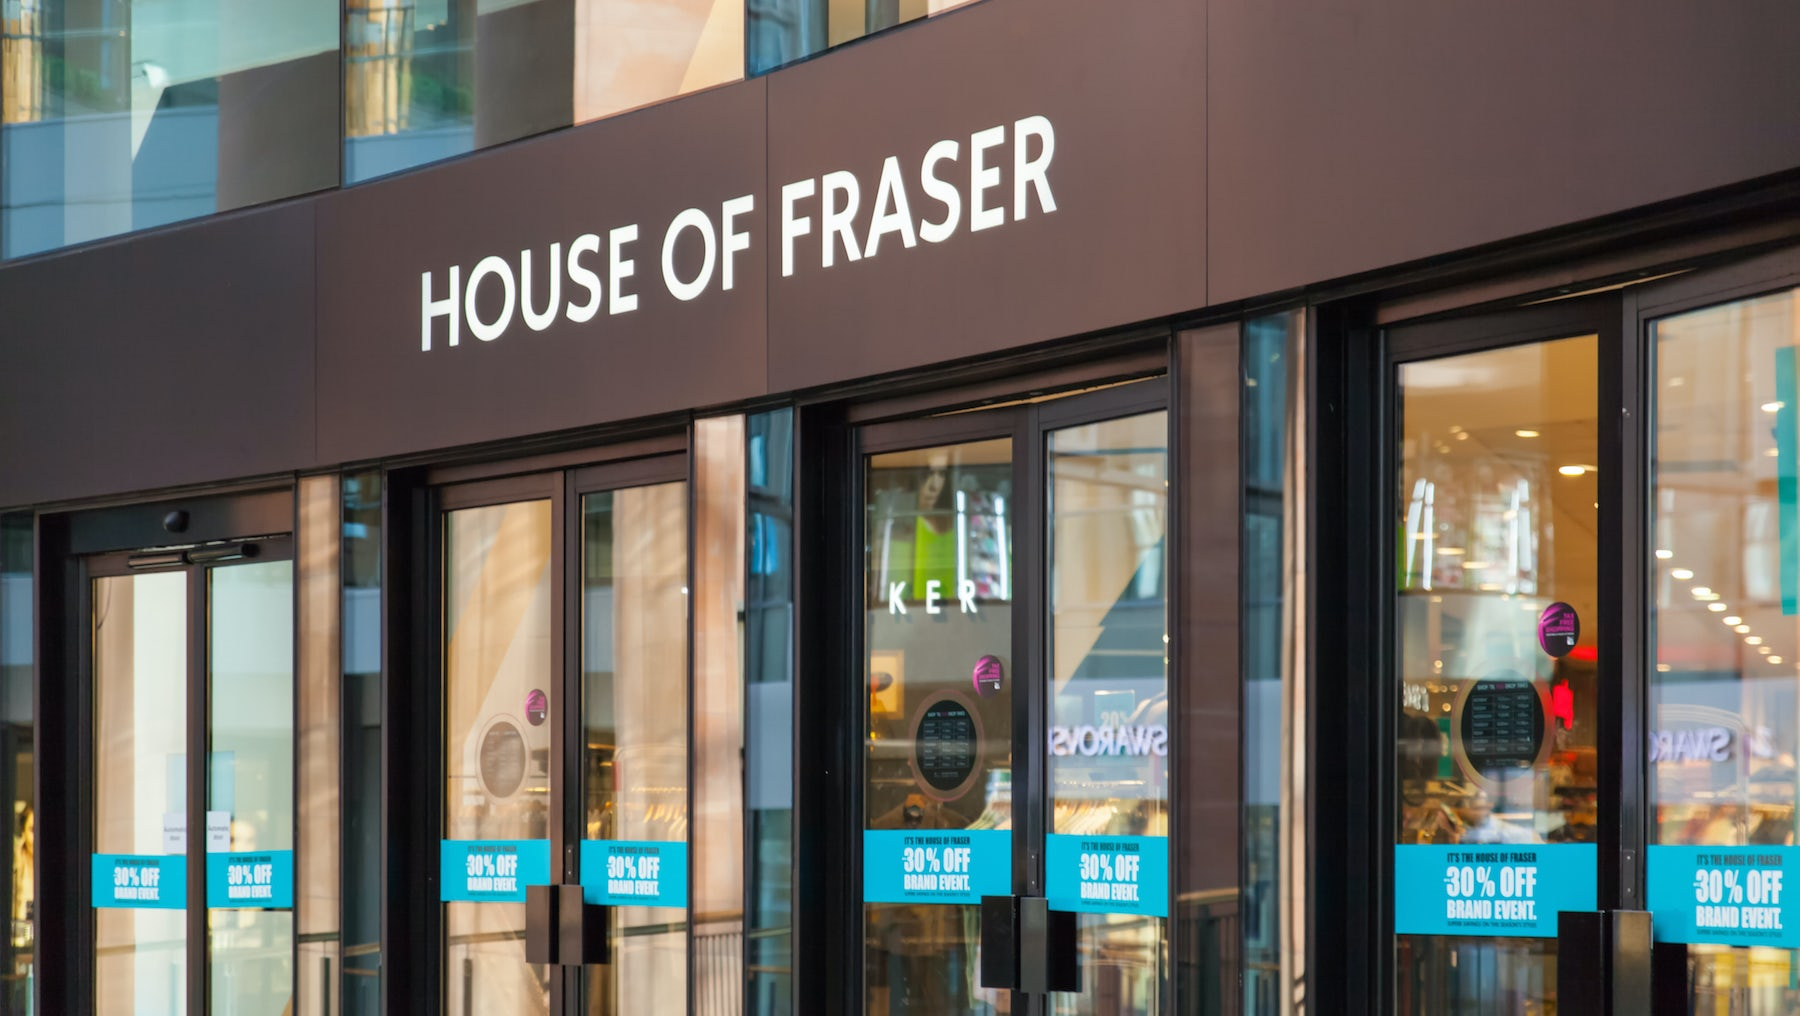 House of Fraser | Source: Shutterstock